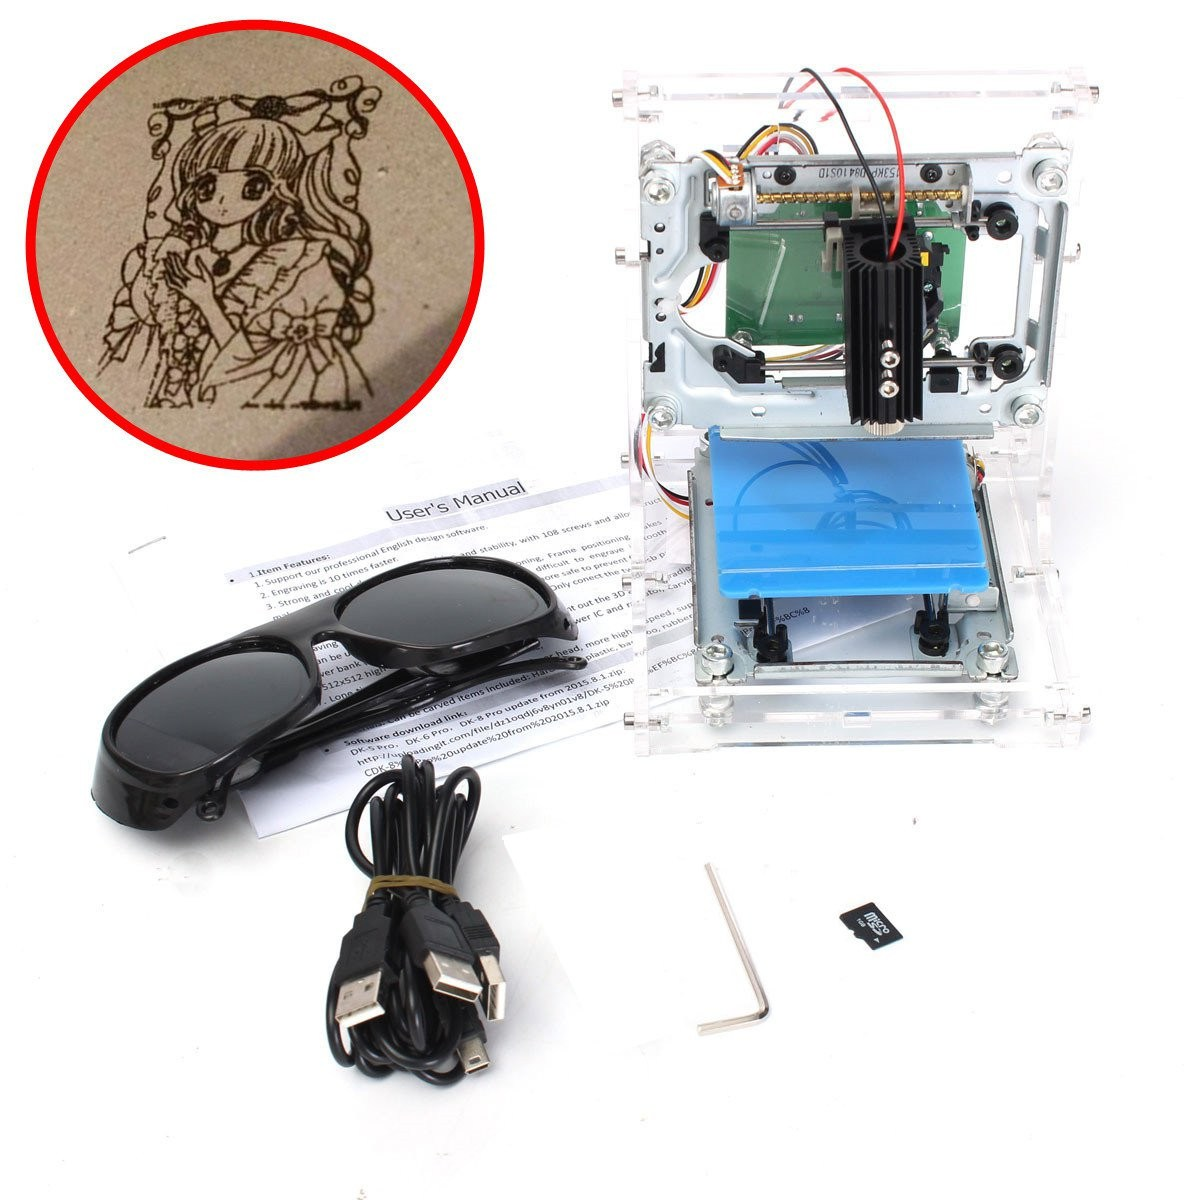 High Quality New Woodworking Engraving Machine  JZ-5 500mW USB DIY Laser Printer Engraver Laser Engraving Machine 38 x 38mm free dhl 2pcs 500mw diy laser engraver usb carving printer machine box high power speedy engraving area 38mm 38mm